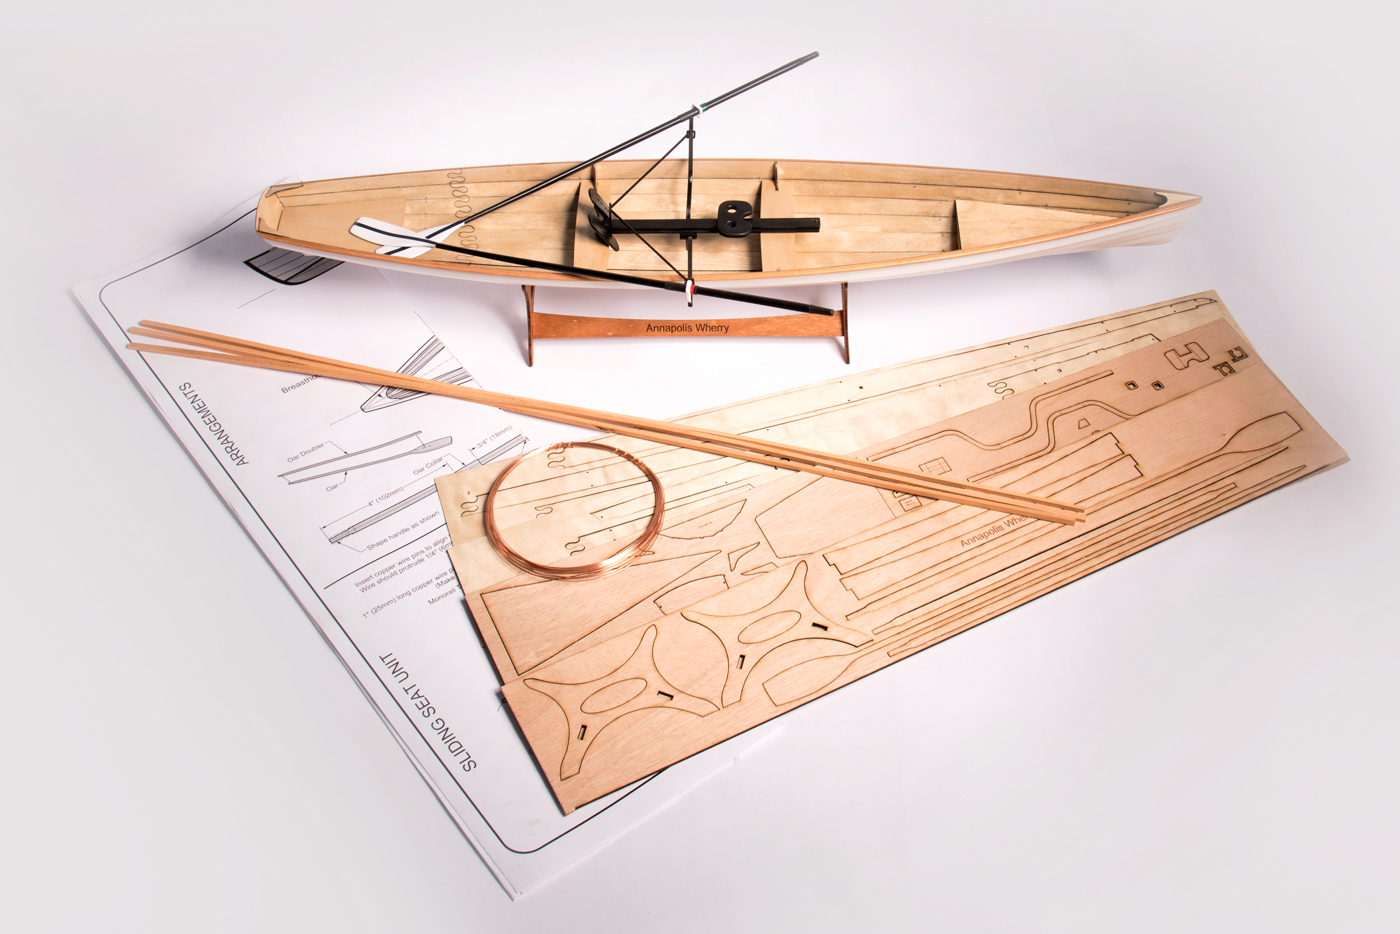 Annapolis Wherry Scale Model Kit